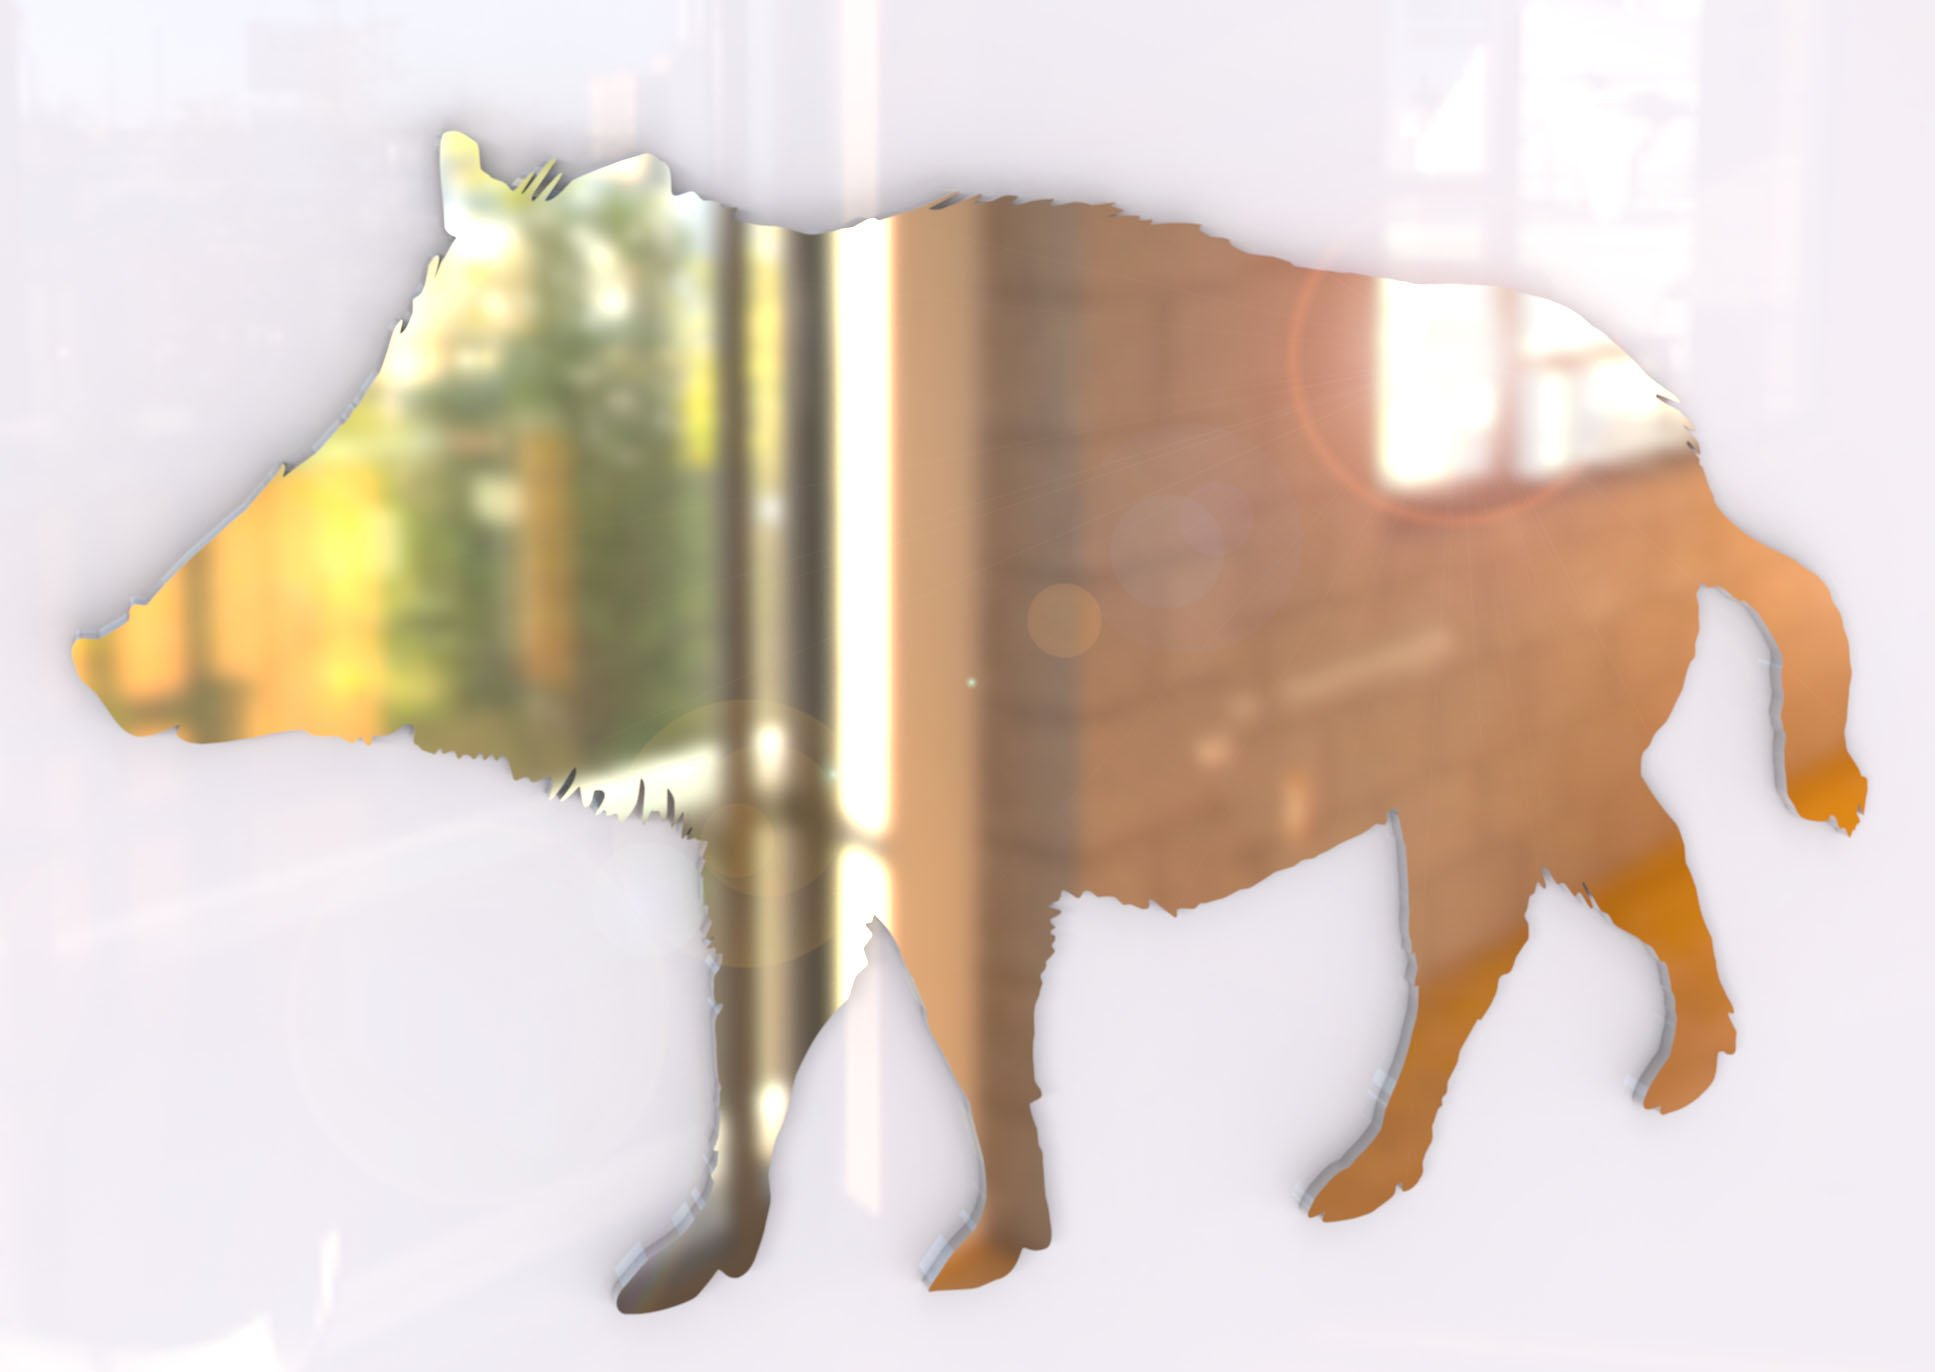 Boar Pig Mirror - Available in various sizes, including sets for crafting kits - 35cm x 21cm